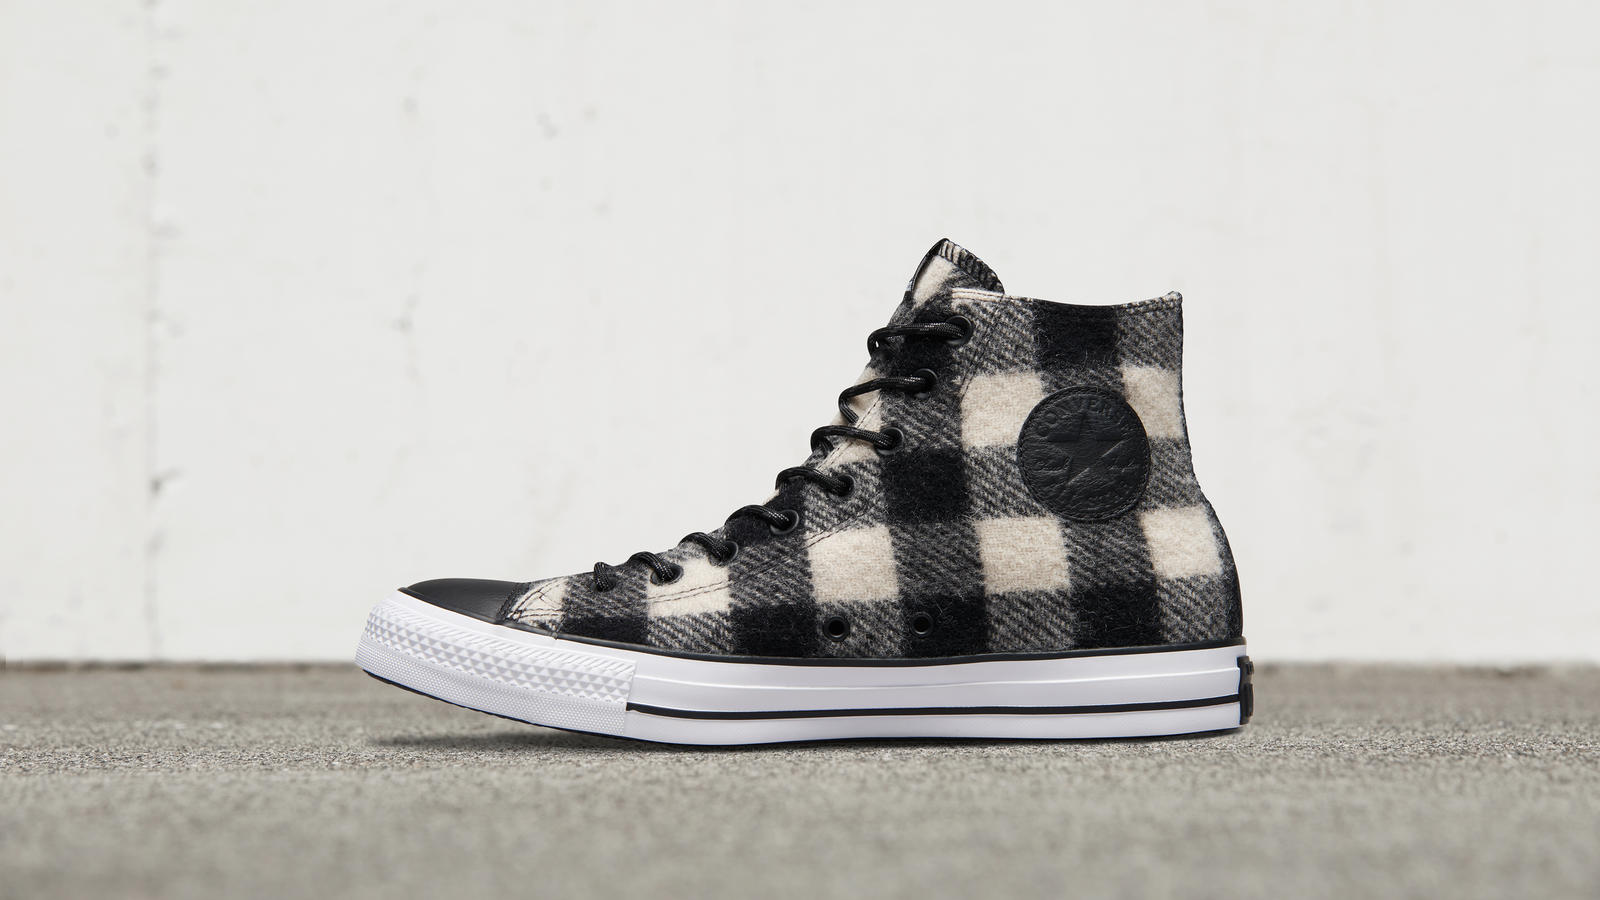 The Converse x Woolrich Chuck Taylor All Star